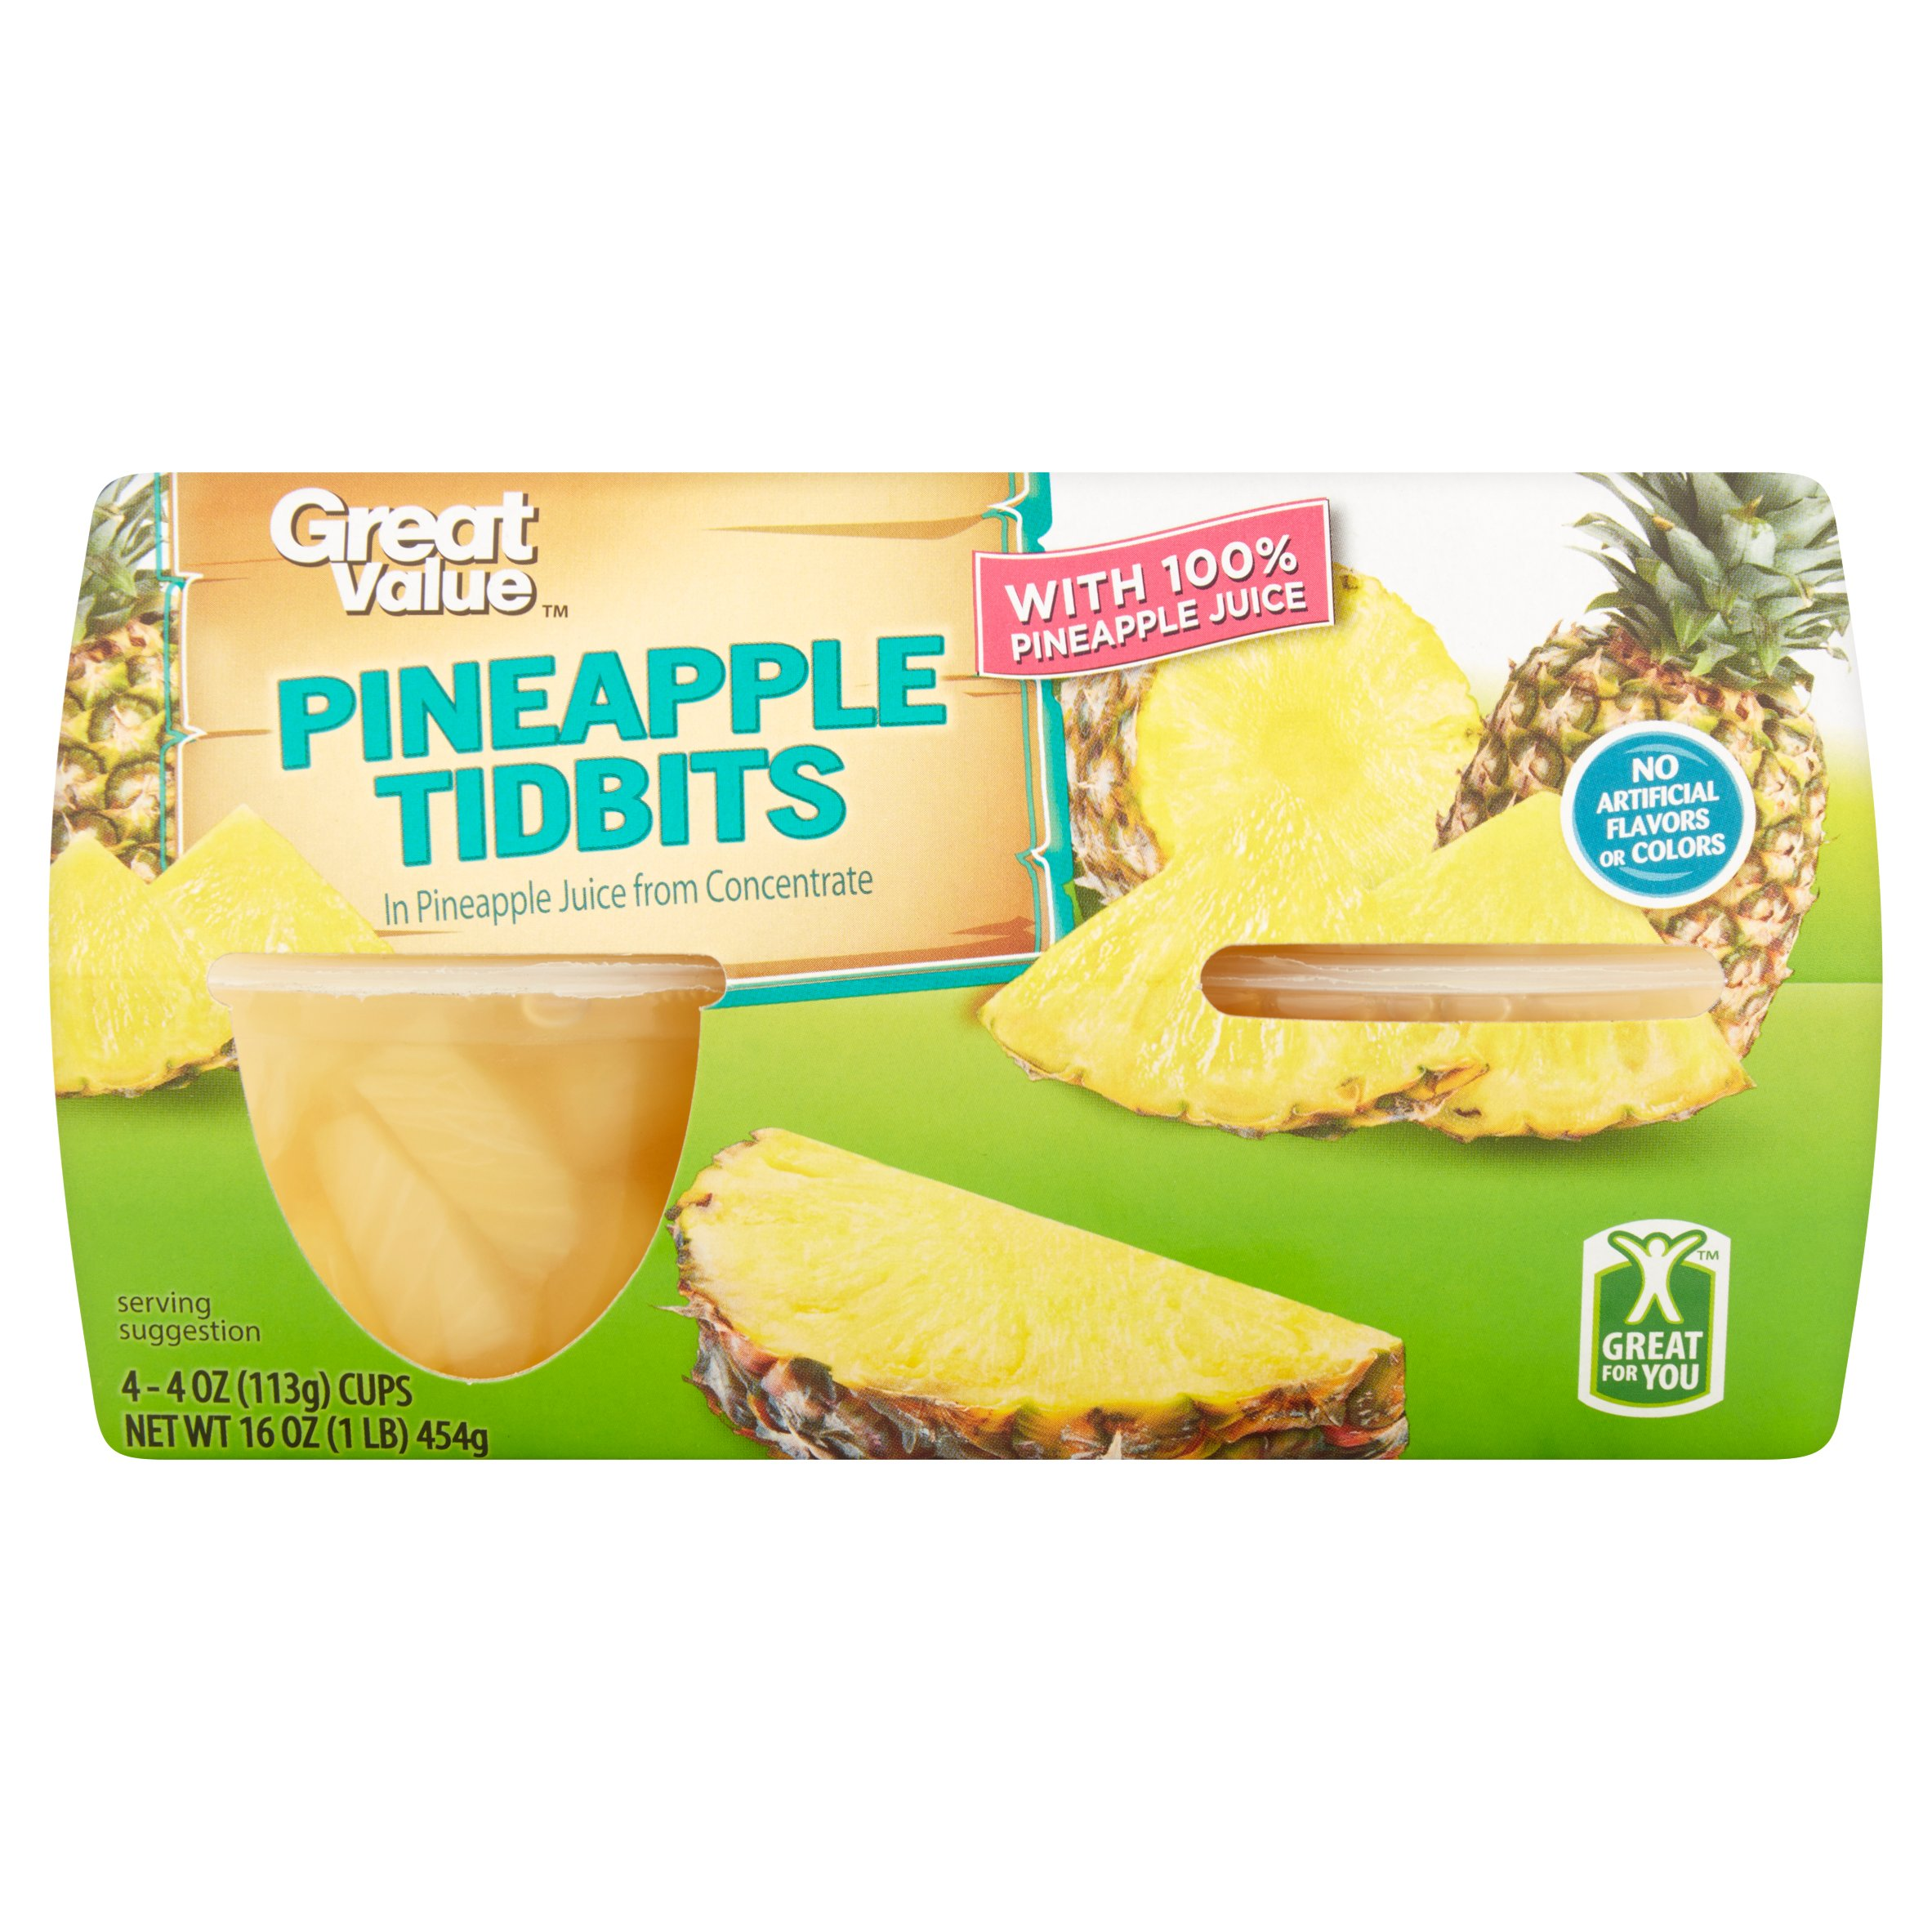 (3 Pack) Great Value Pineapple Tidbits in 100% Pineapple Juice, 4 oz, 4 Count